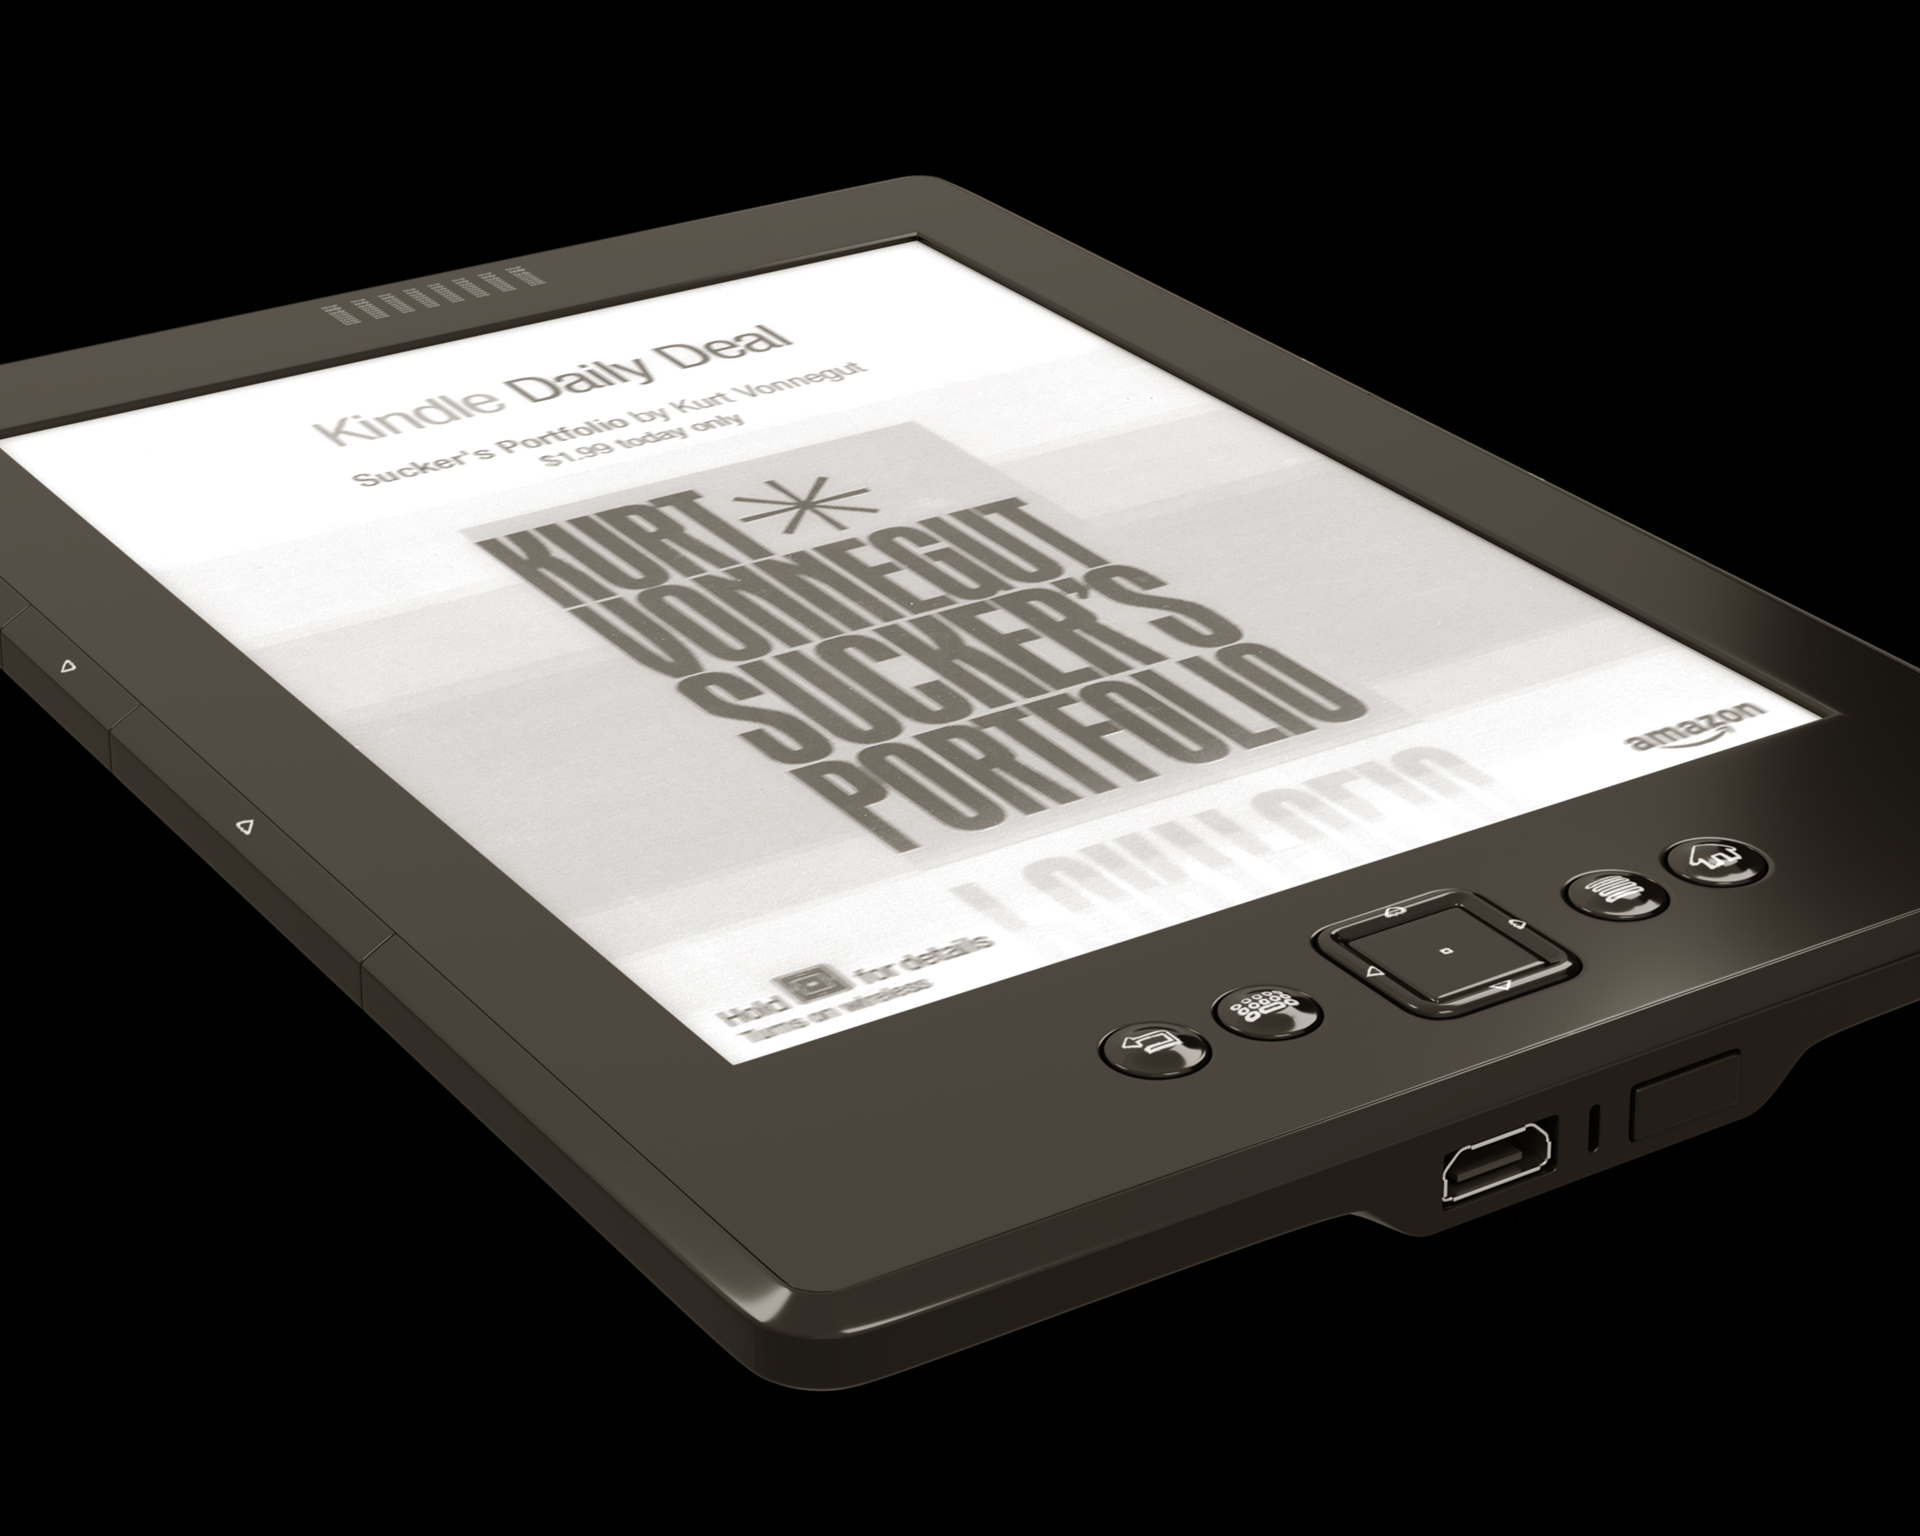 e-reader-kindel-amazon-alfonso-perez-alvarez